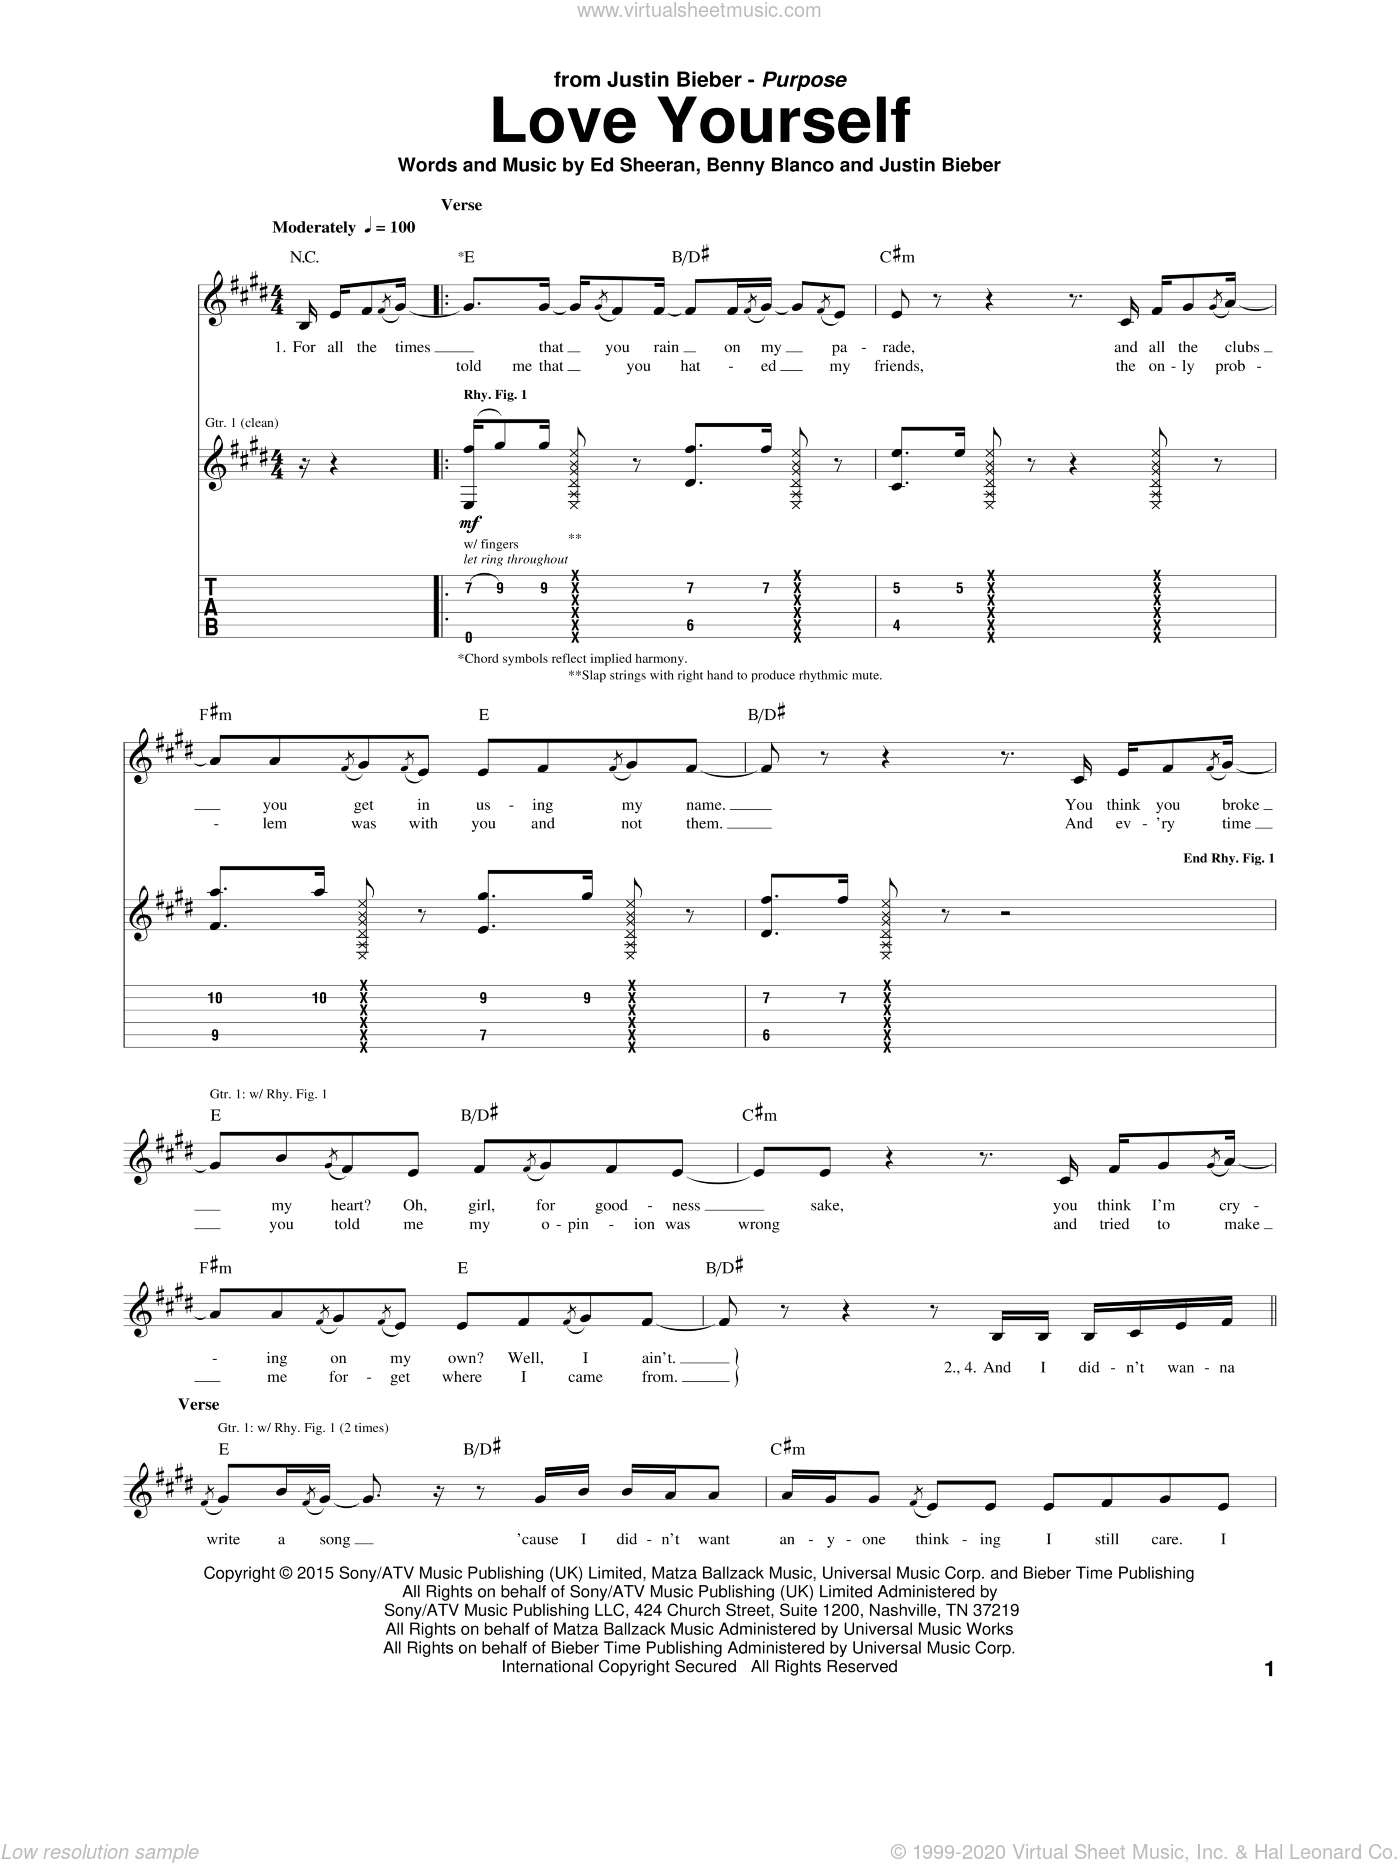 Love Yourself sheet music for guitar (tablature) by Justin Bieber, Benny Blanco and Ed Sheeran, intermediate skill level